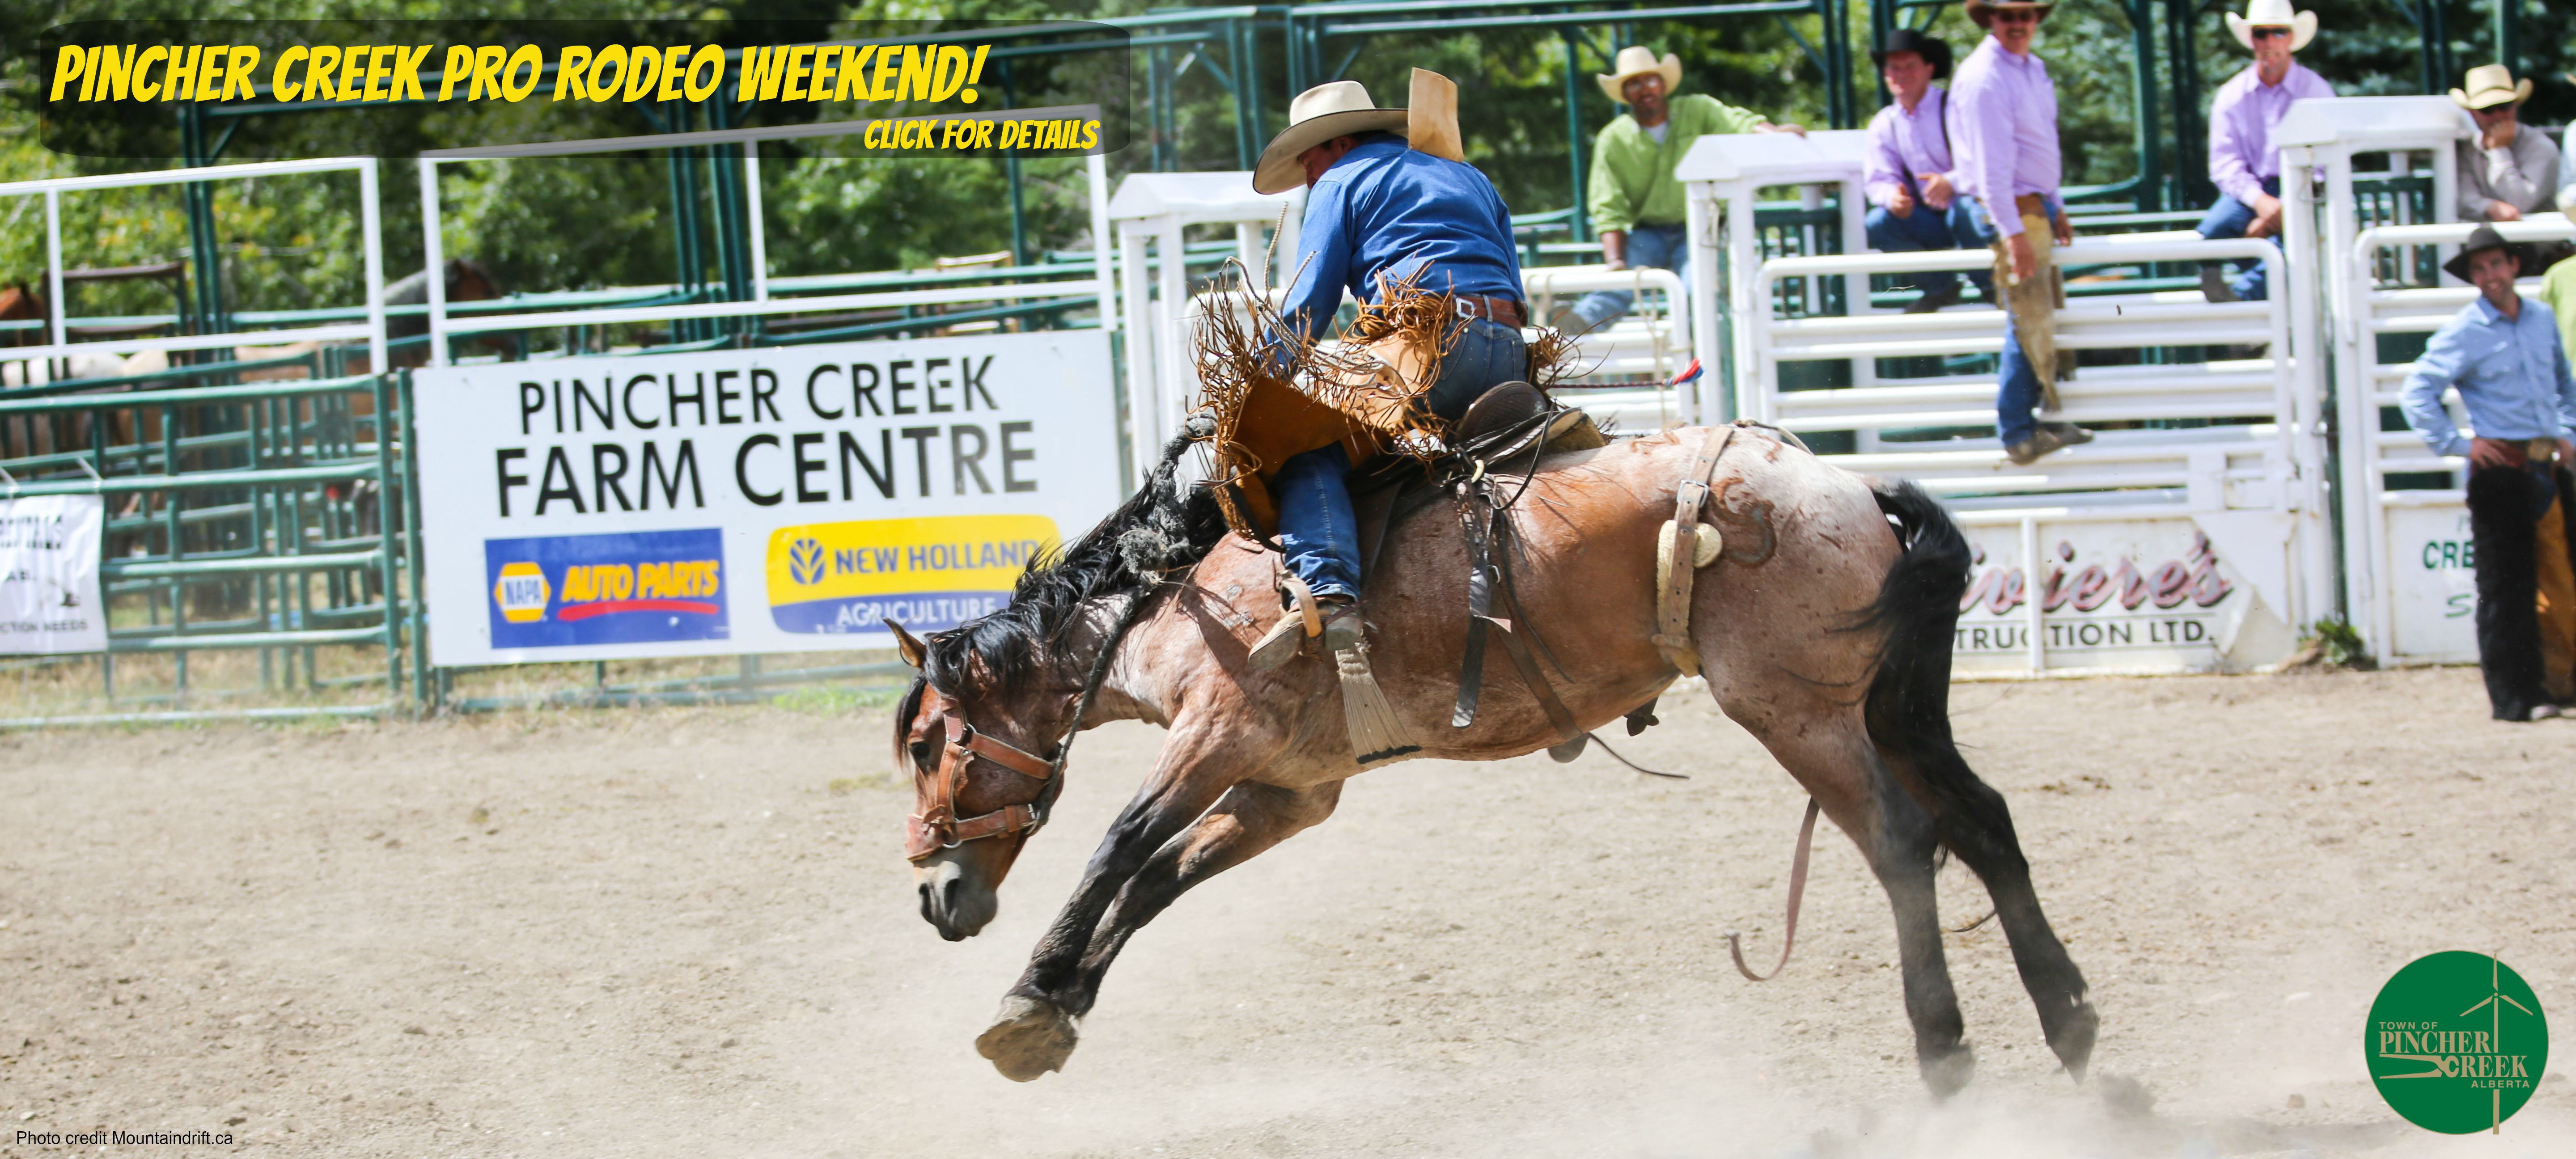 Click here for all the details on what is happening in Pincher Creek for Rodeo Weekend!